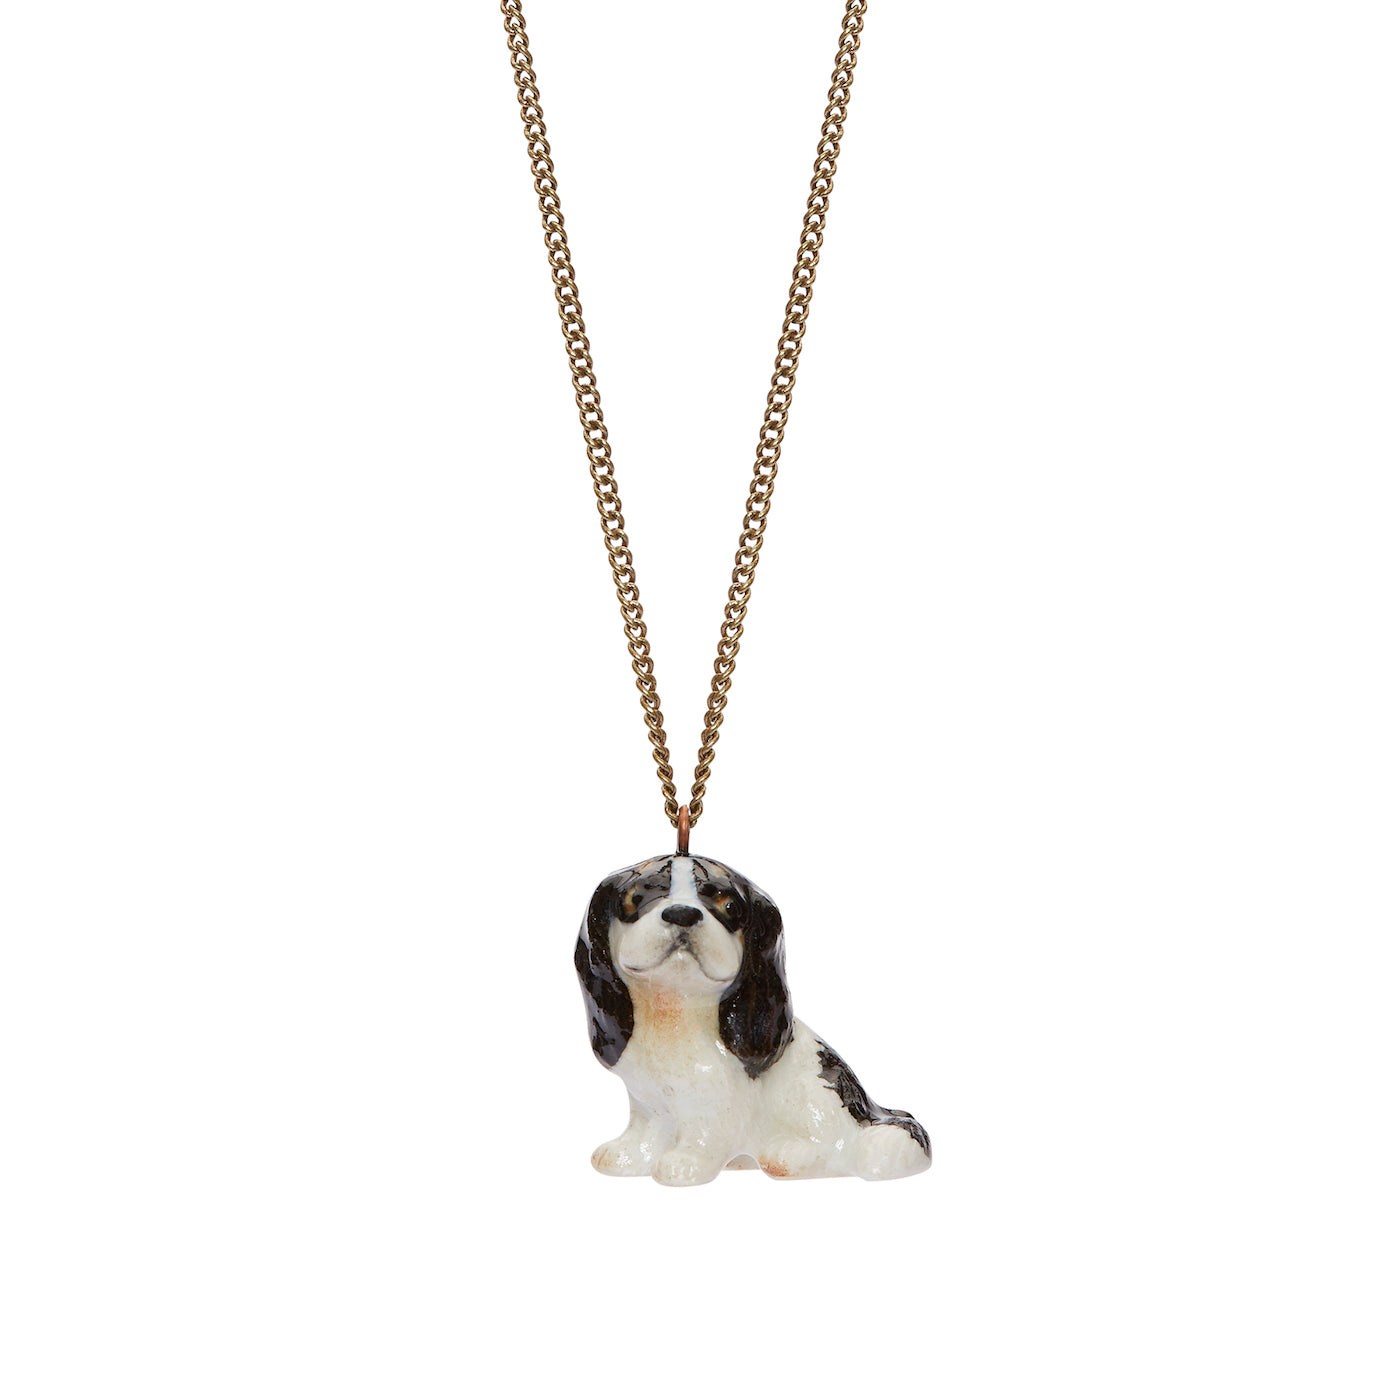 Black King Charles Spaniel Necklace